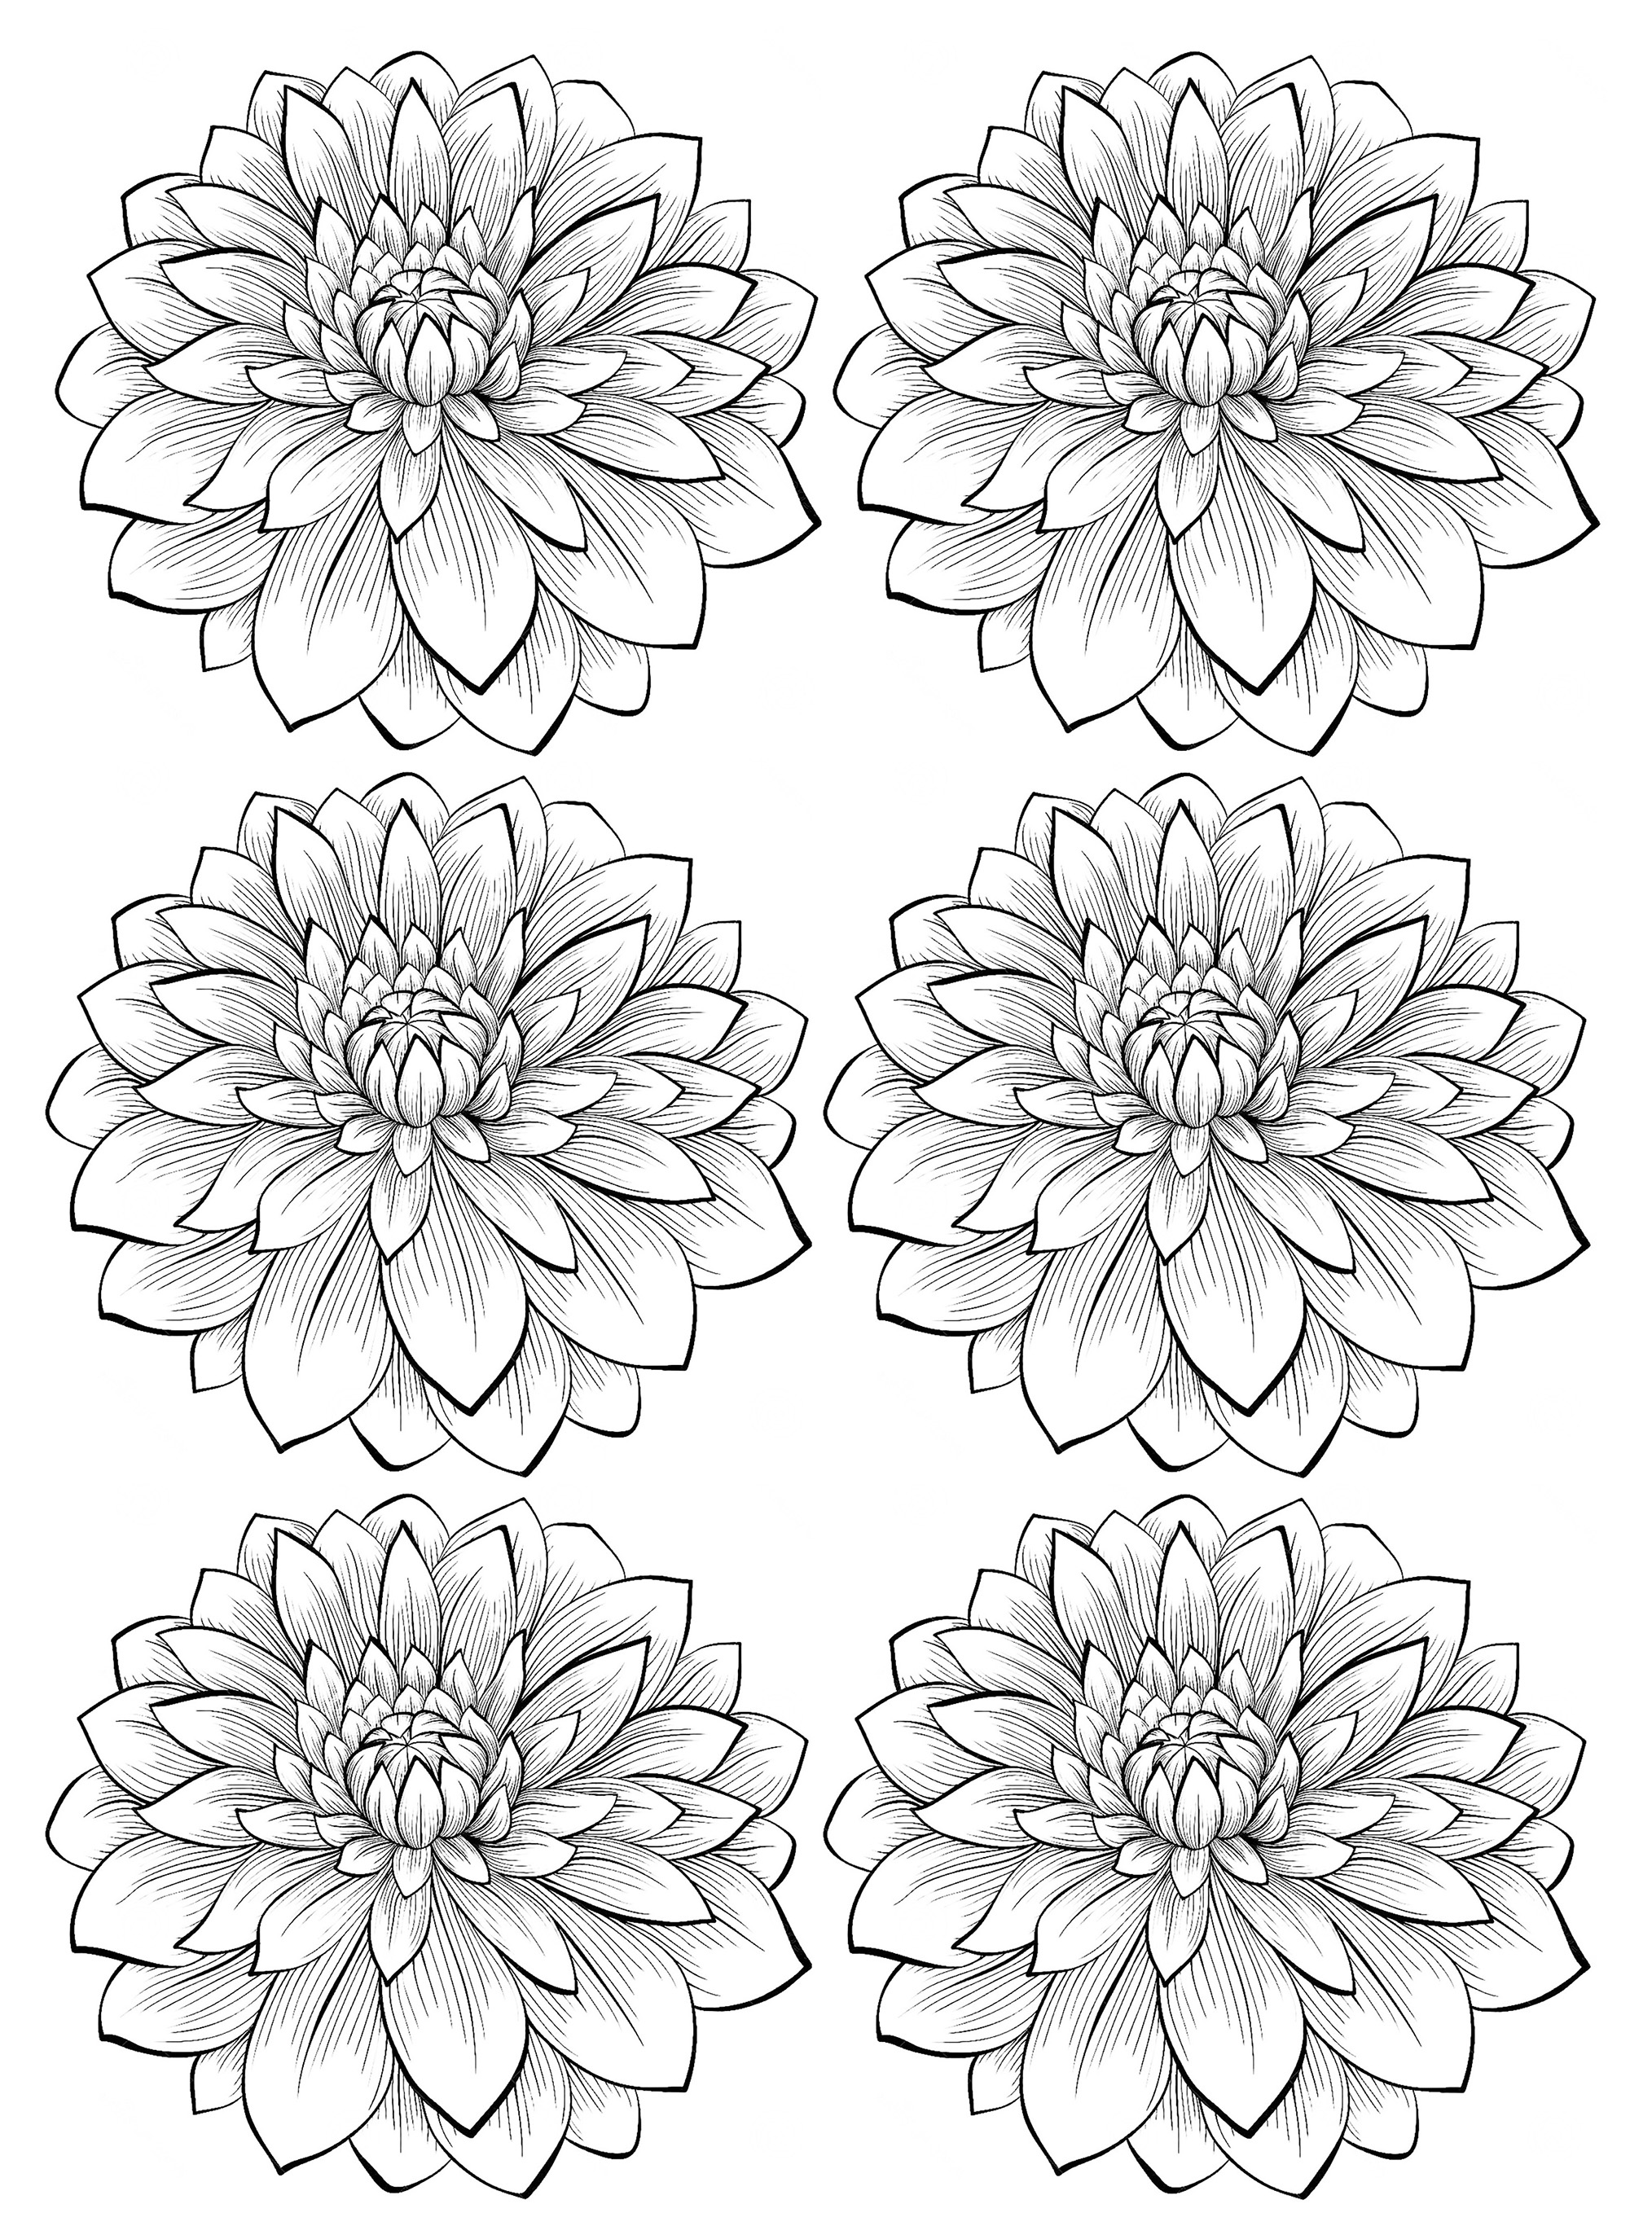 free flower coloring pages for adults get this detailed flower coloring pages for adults pages adults flower for coloring free